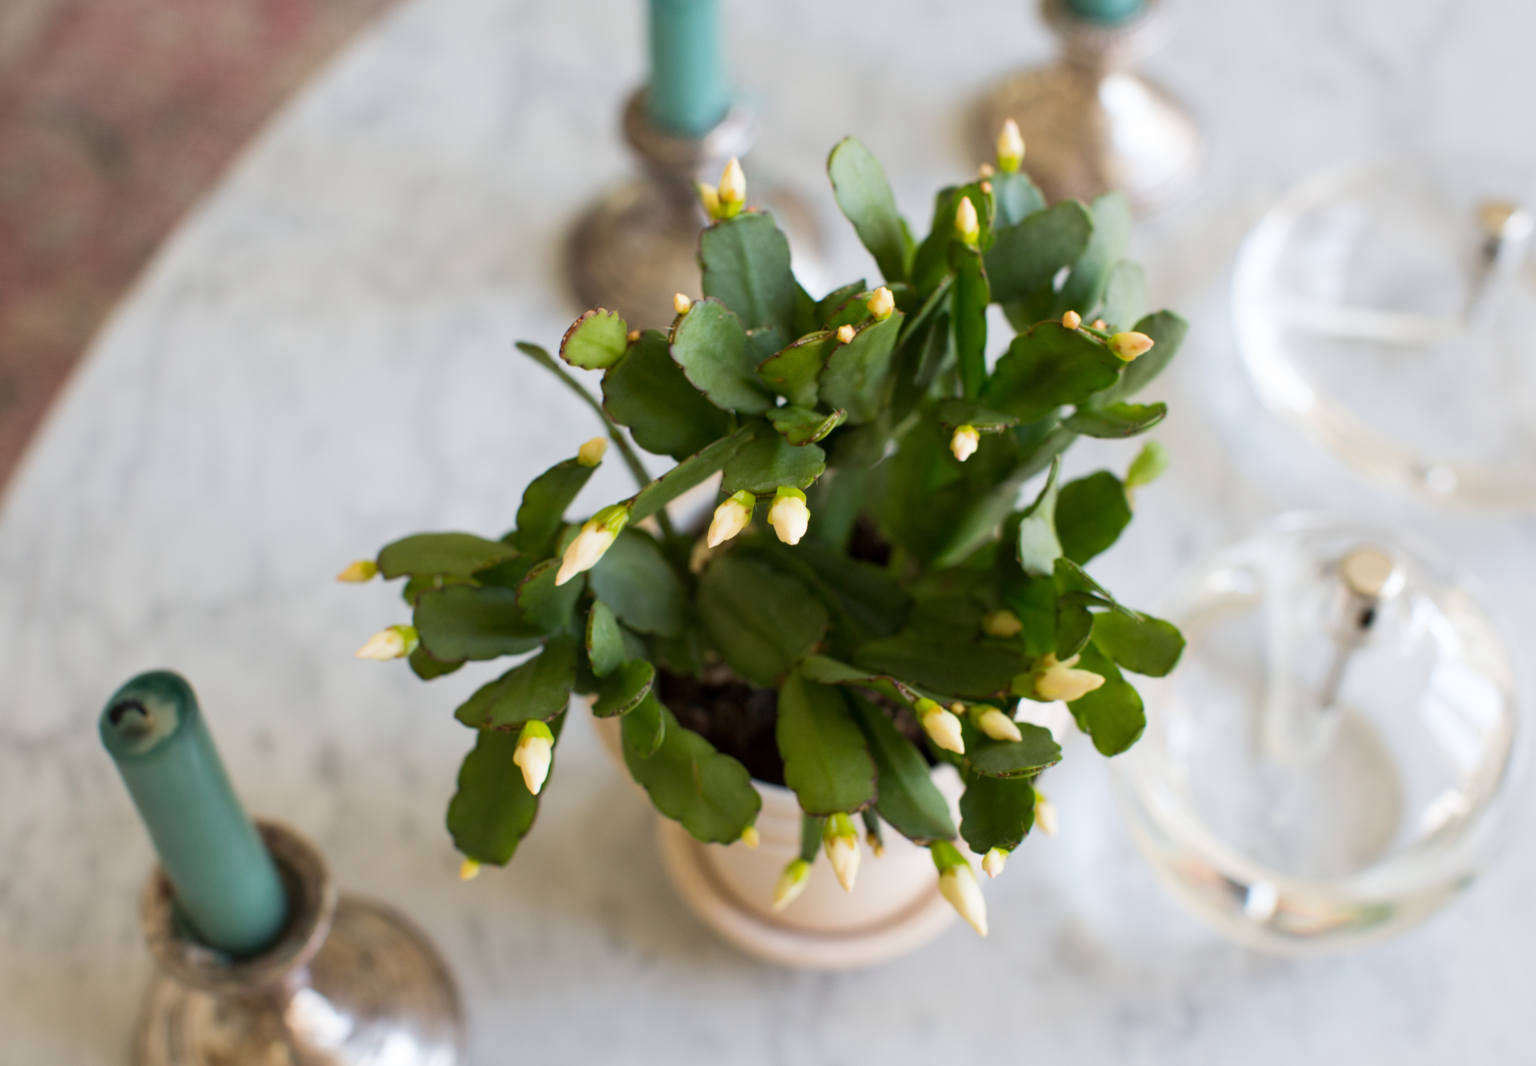 Easter Cactus Tips On How To Grow And Care For A Tropical